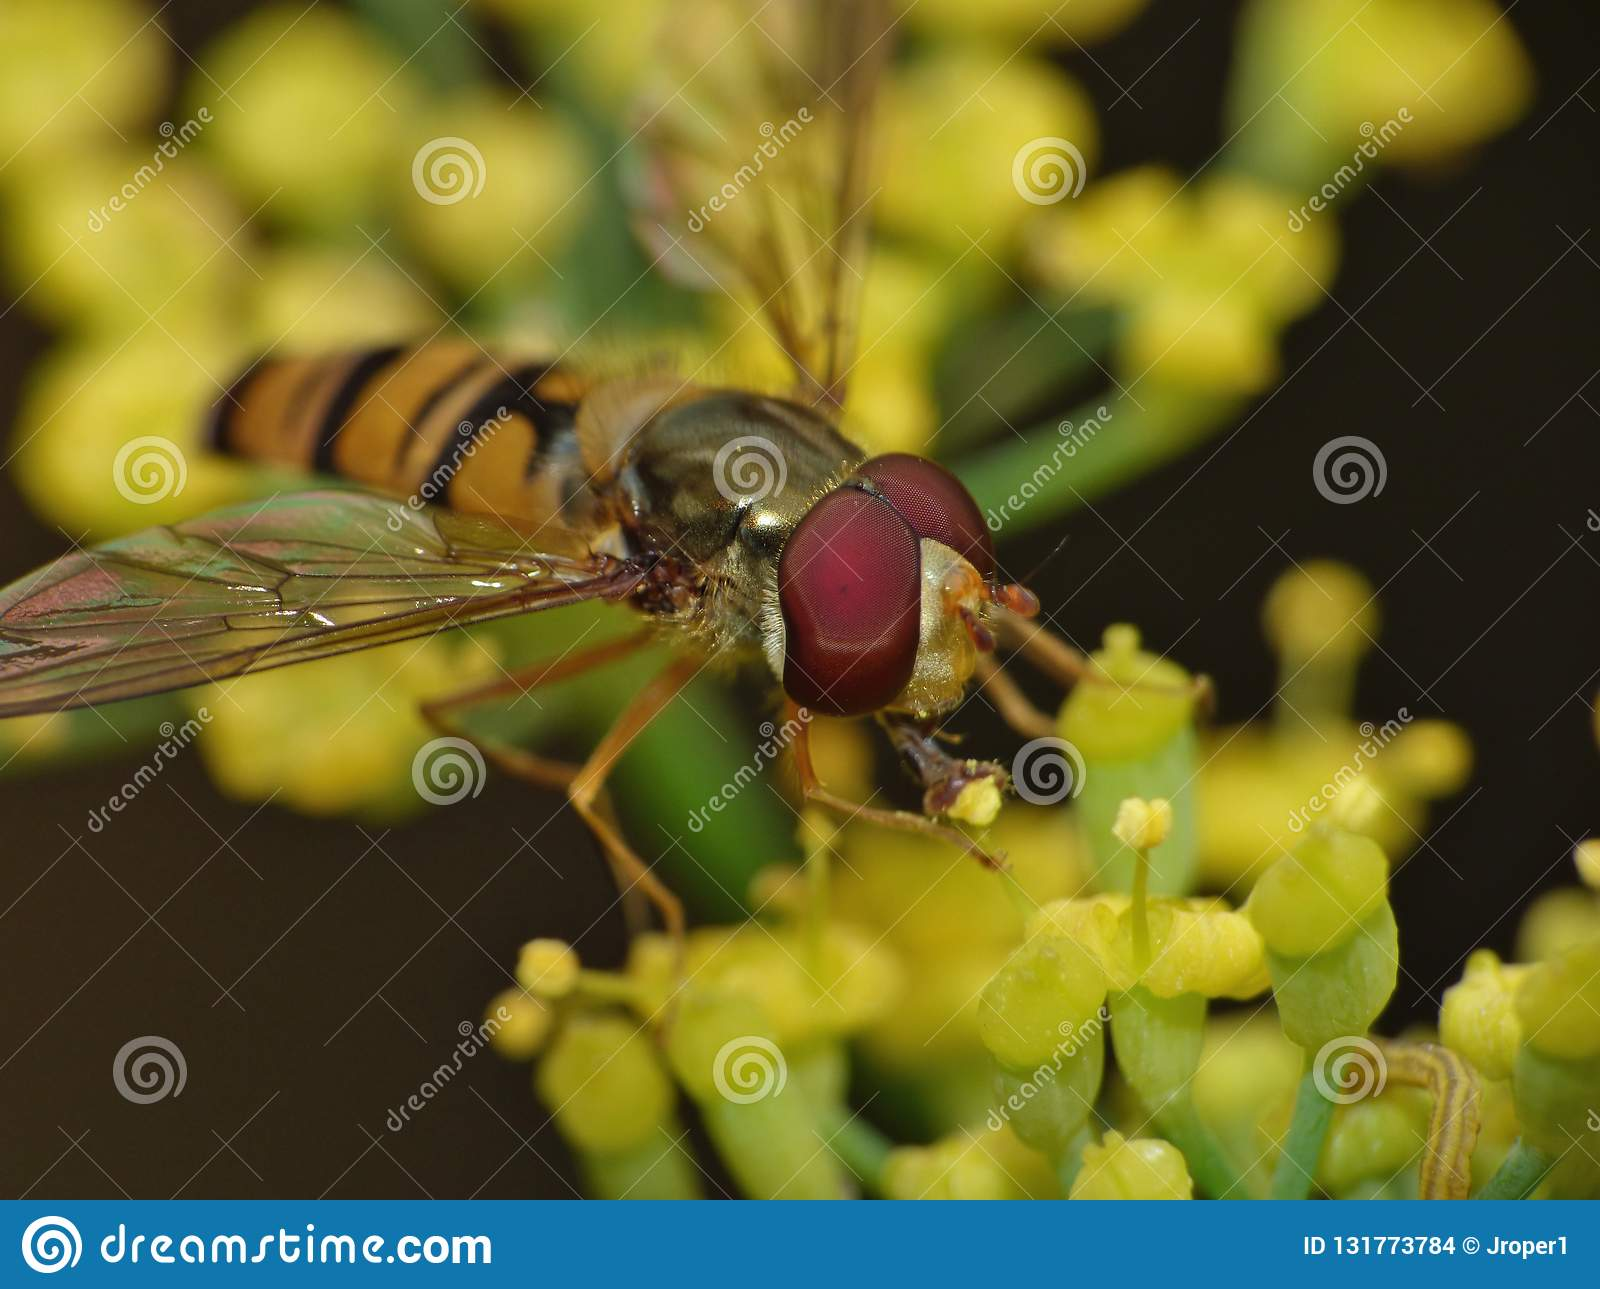 Macro lens close up of a hoverfly collecting pollen from the garden, photo taken in the UK